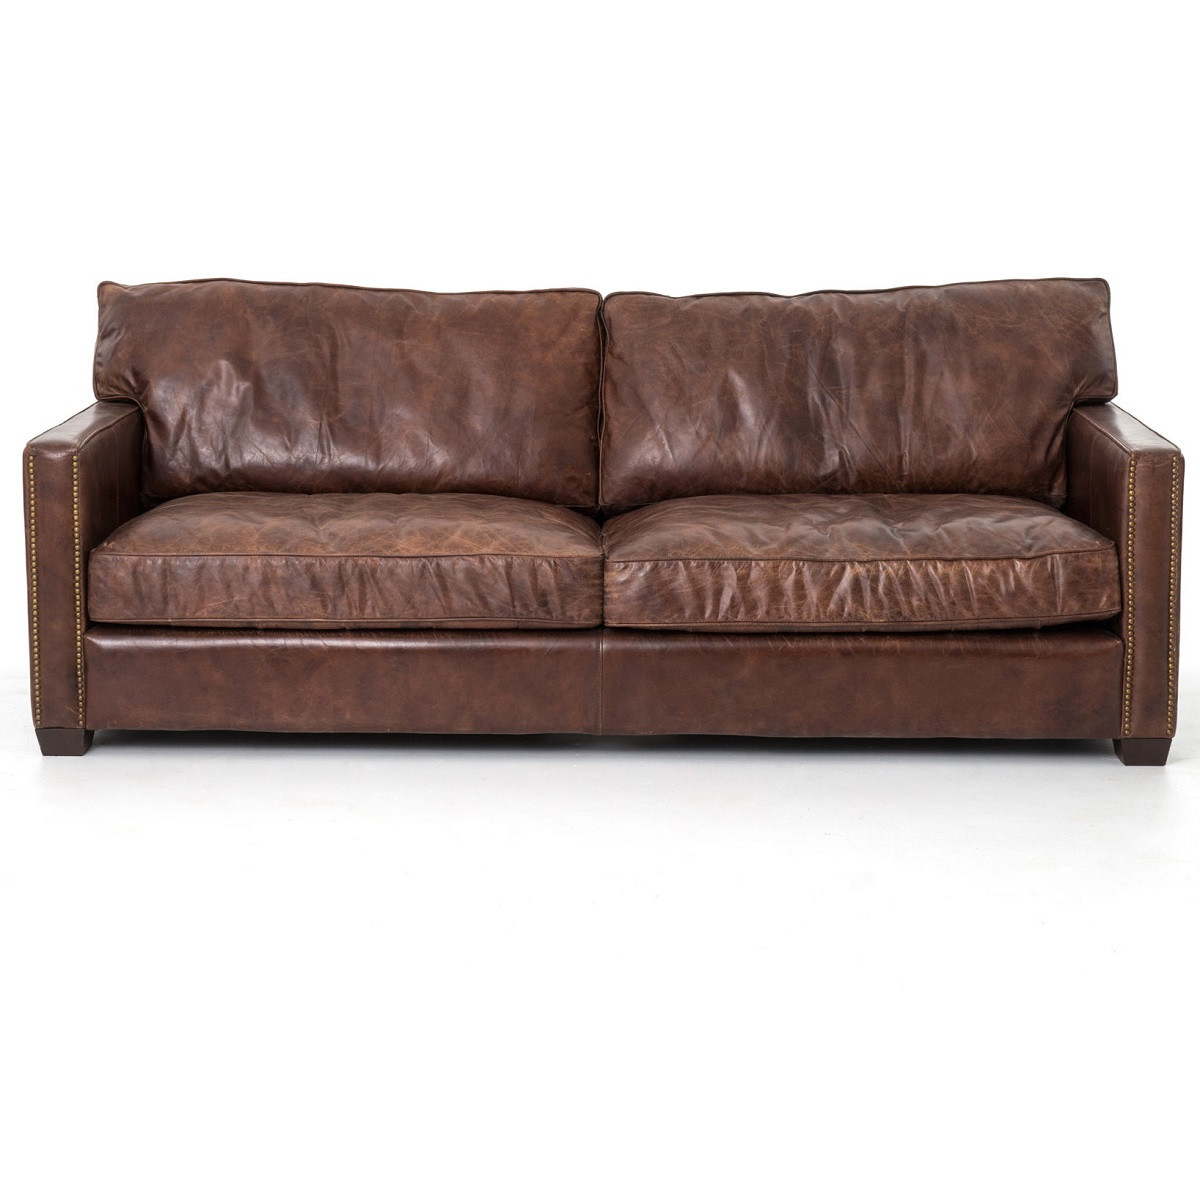 Vintage Upholstered Leather Sofa: Larkin 3 Seater Vintage Cigar Contemporary Leather Sofa